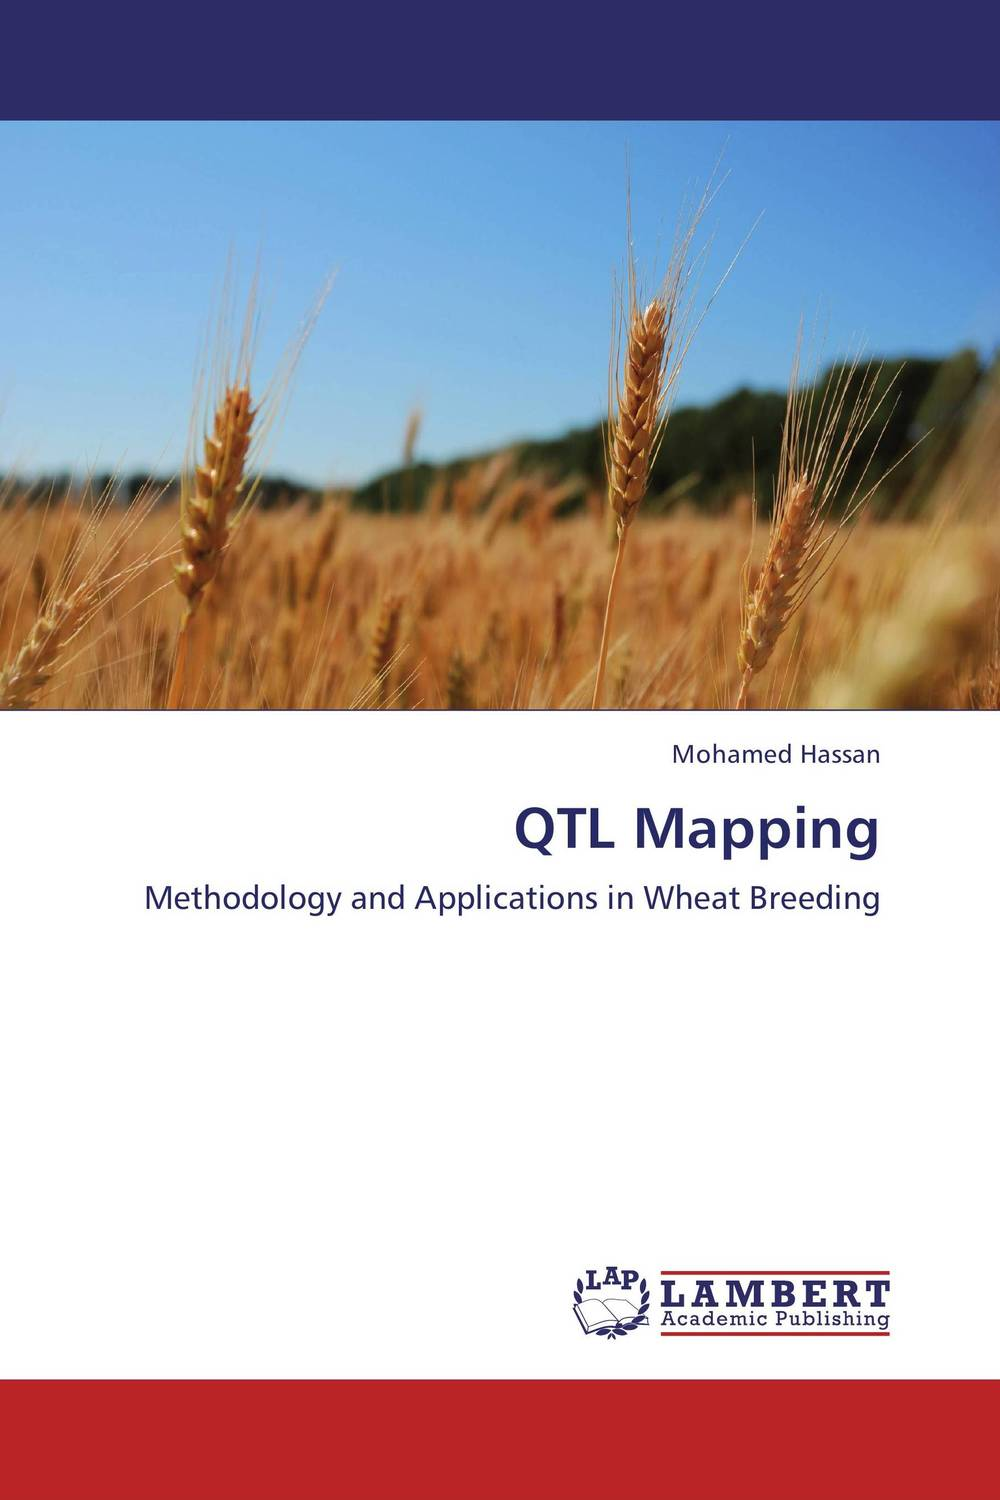 QTL Mapping naresh pratap singh himanshi paliwal and vaishali shami molecular and morphological analysis for stay green trait in wheat